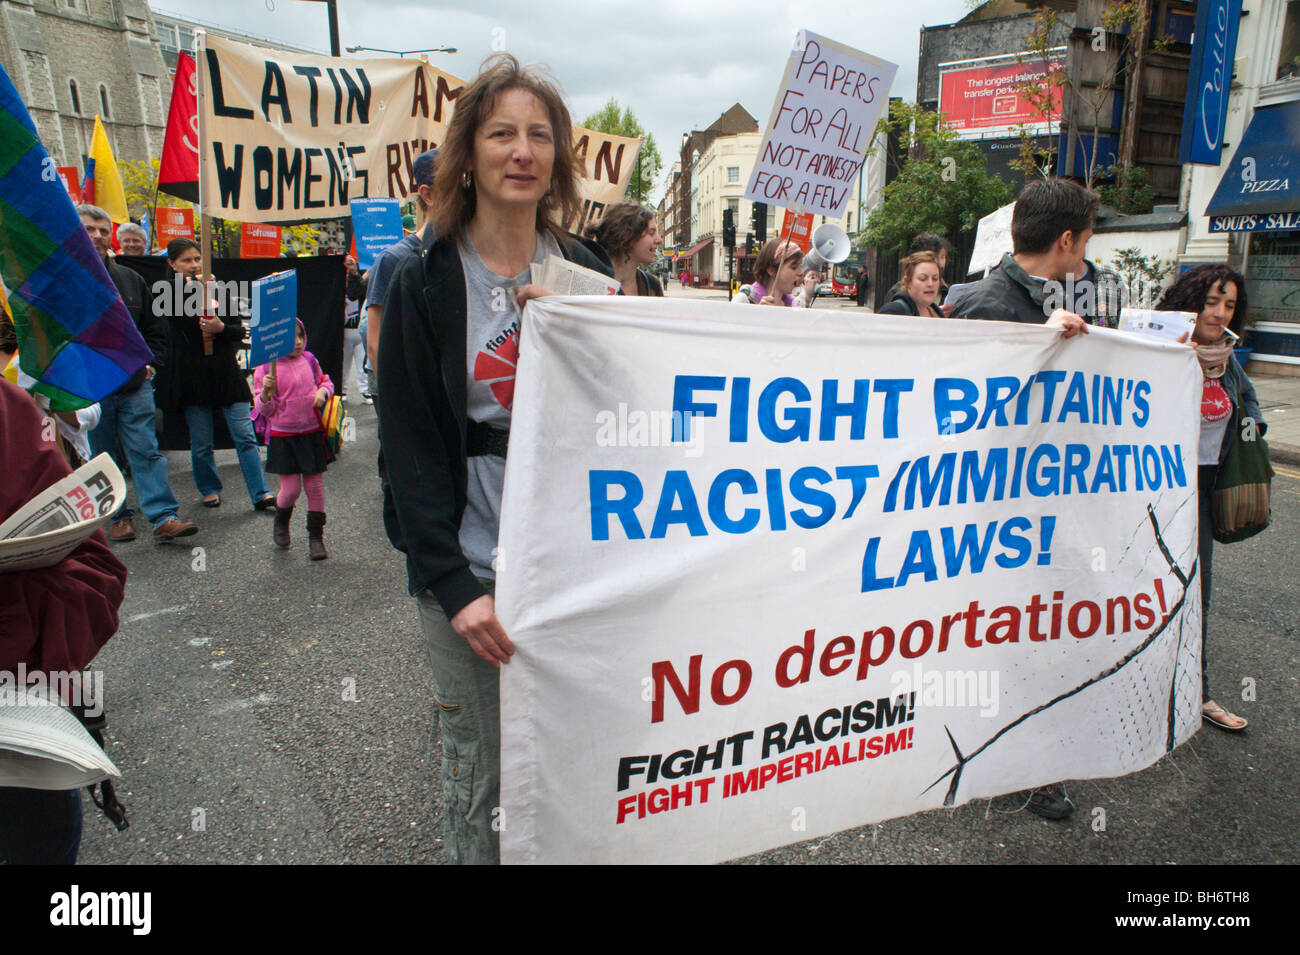 Fight Racism FIght Imperialism banner against deportations at Strangers into Citizens march, London, May 2009 - Stock Image